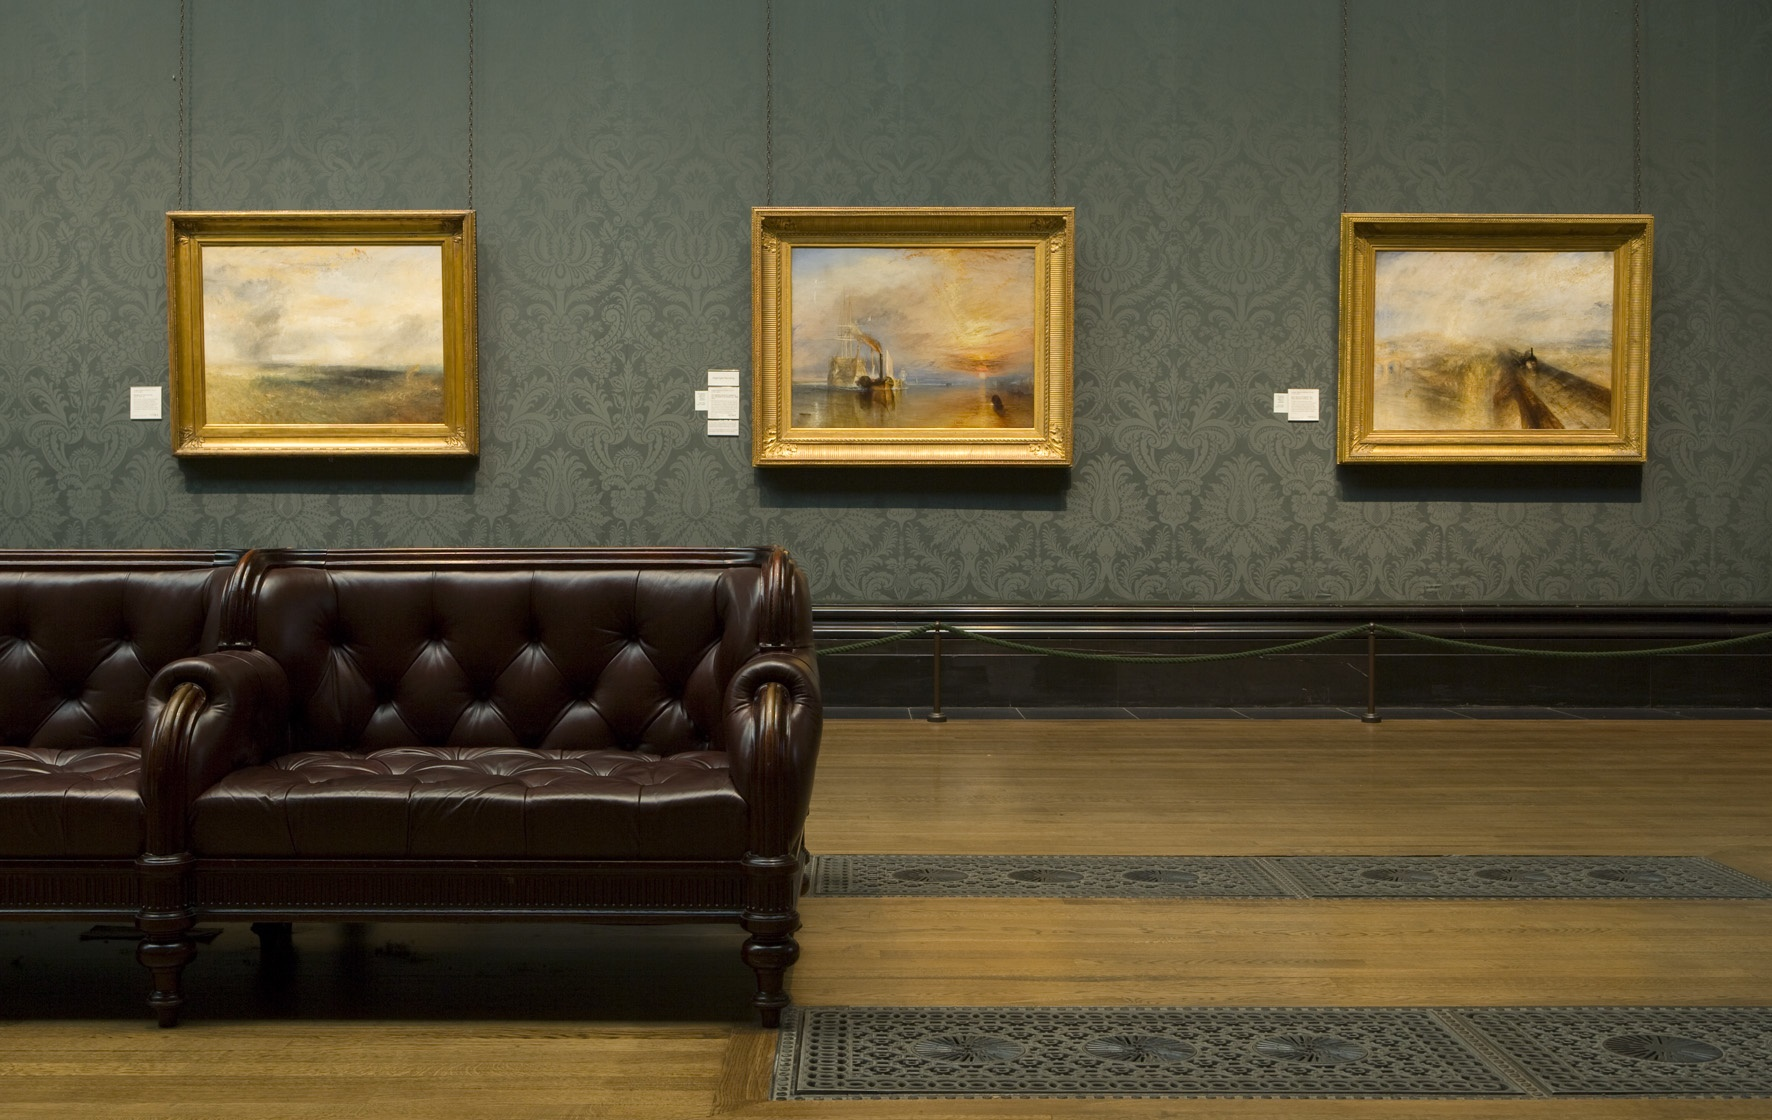 Archives for London Seminar: The Turner Bequest at the National Gallery. Photograph copyright of The National Gallery, London